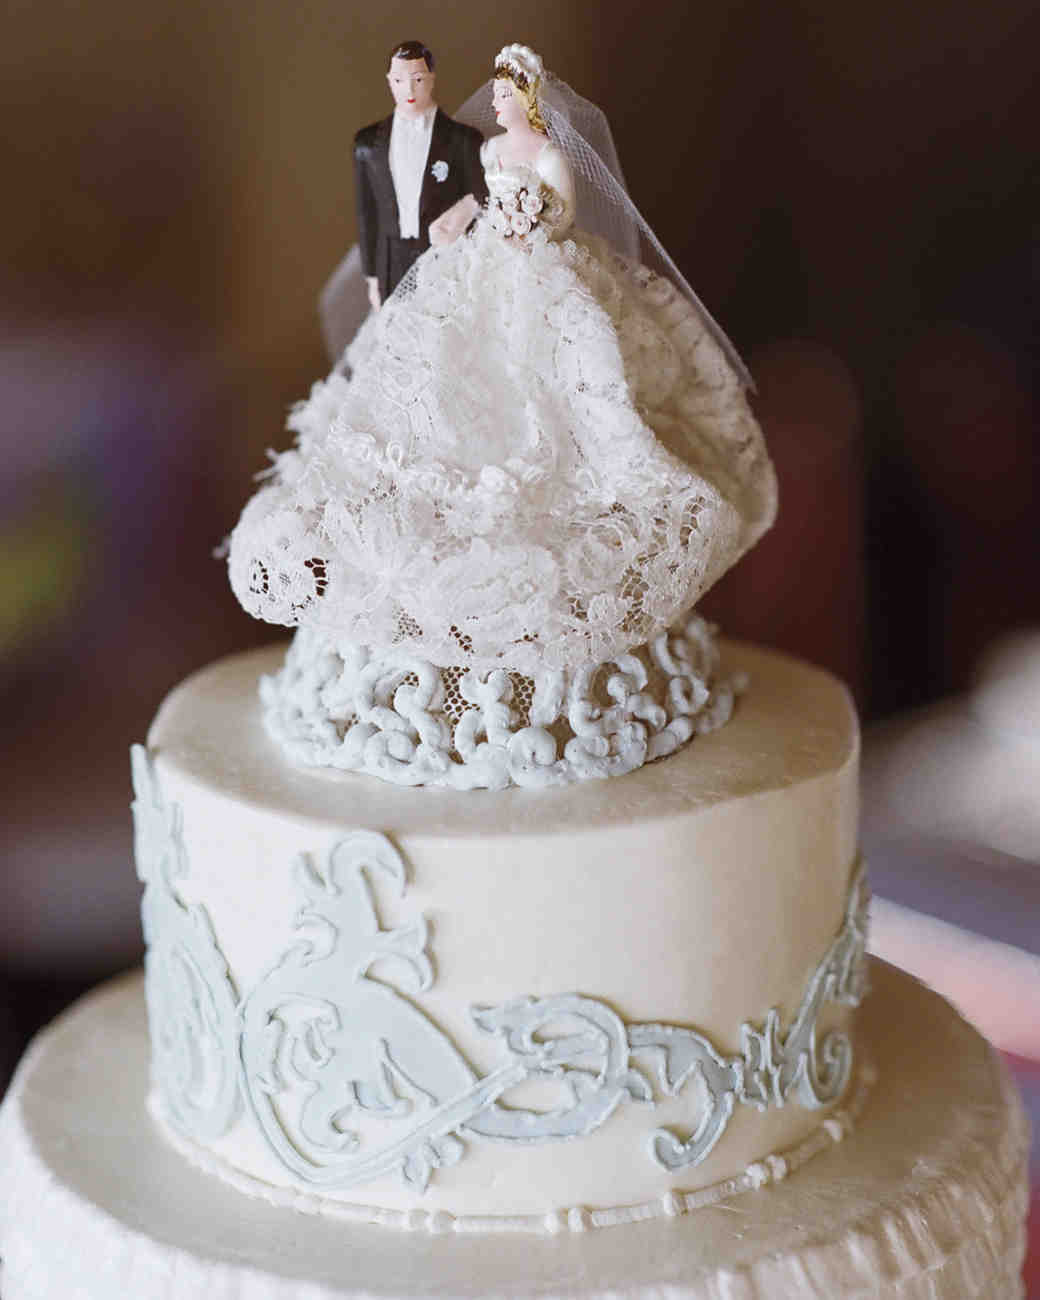 Cake Toppers For Wedding Cakes  Wedding Cakes Toppers Ideas That Inspire The Wedding Day